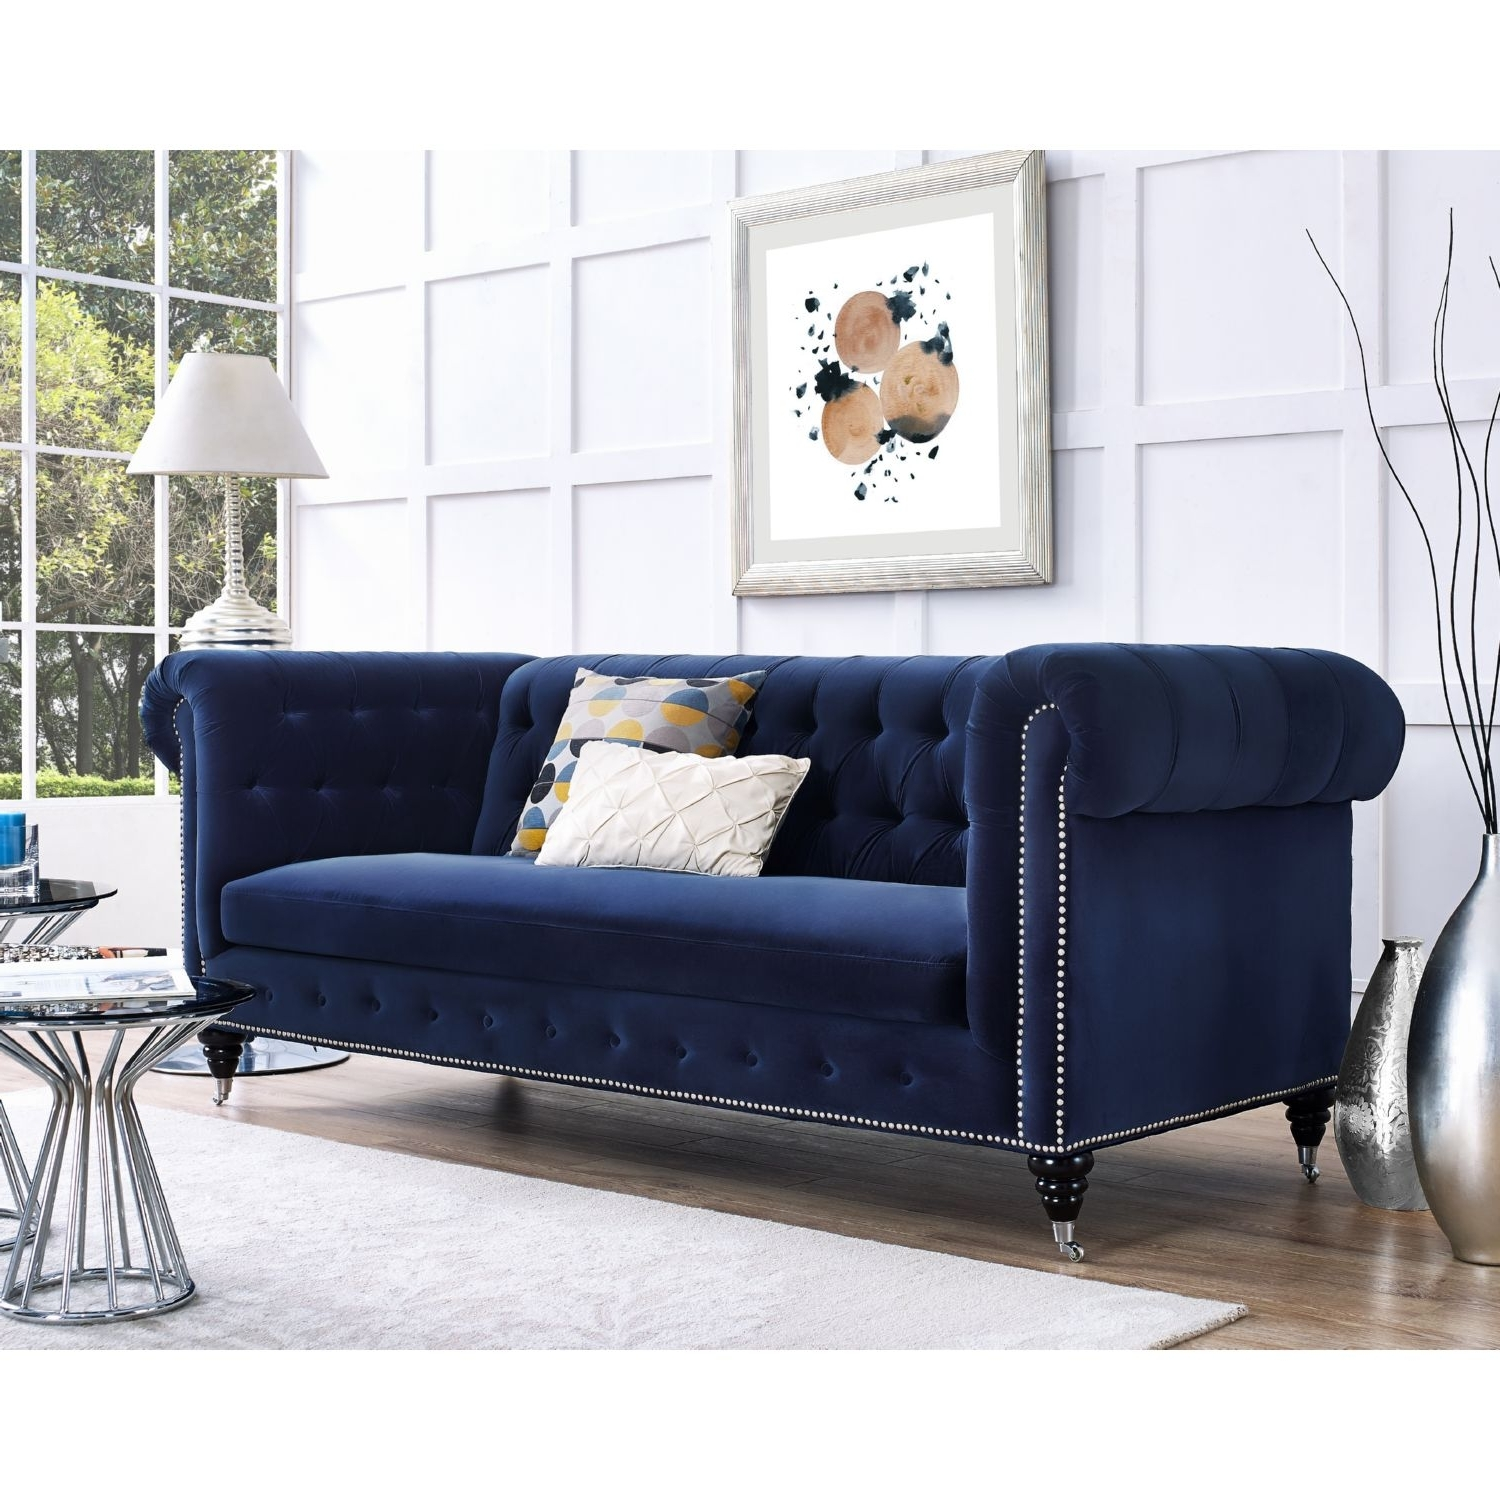 Well Known Furniture : Button Tufted Fabric Sofa Sofa Dallas Furniture Ottawa Intended For Dufresne Sectional Sofas (View 14 of 15)